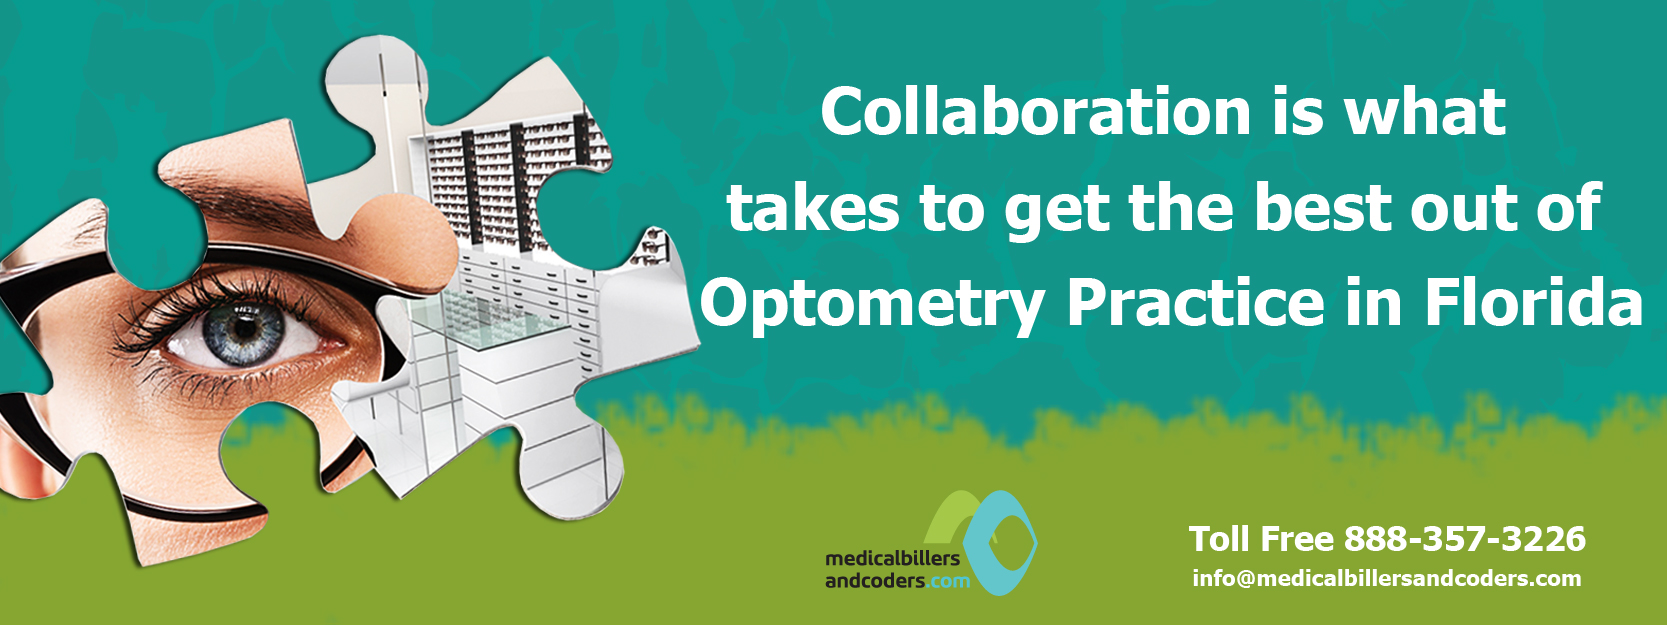 Collaboration is what takes to get the best out of Optometry Practice in Florida